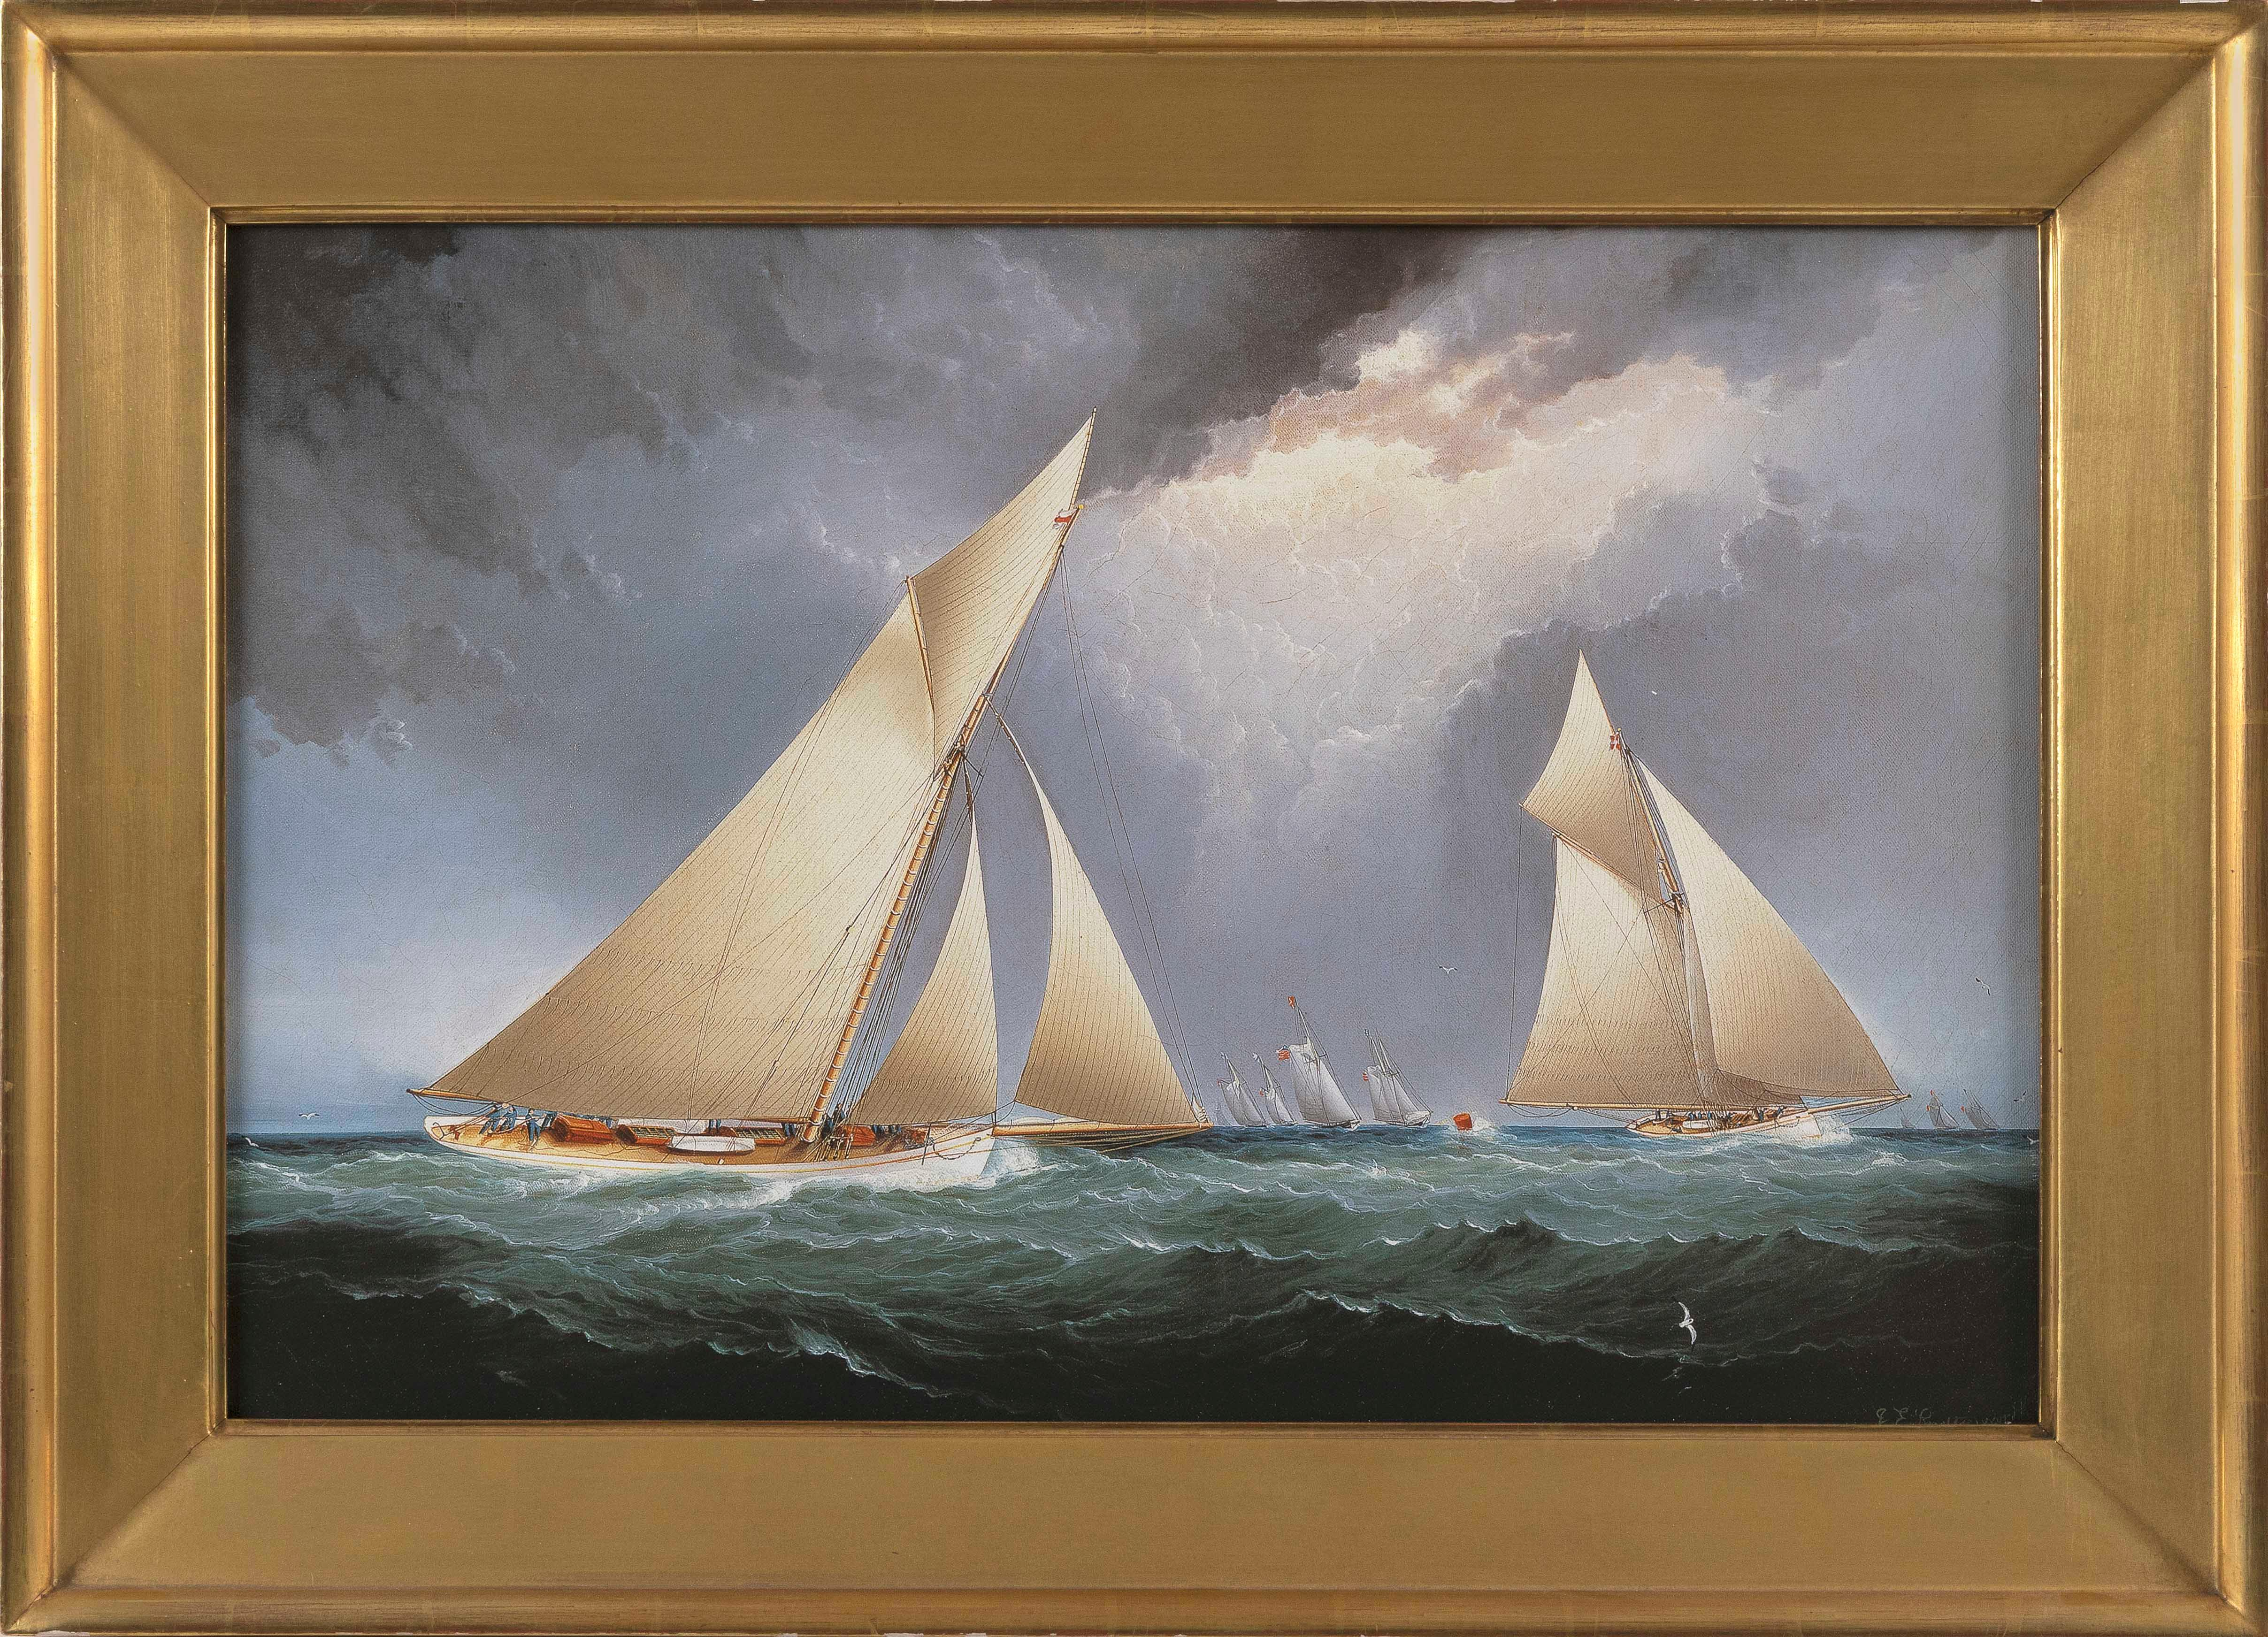 """FINE REPRODUCTION OF A JAMES E. BUTTERSWORTH PAINTING OF """"PURITAN"""" AND """"MAYFLOWER"""" IN THE 1886 AMERICA'S CUP TRIAL Giclée on canvas, 16"""" x 24"""". Framed 21"""" x 30""""."""